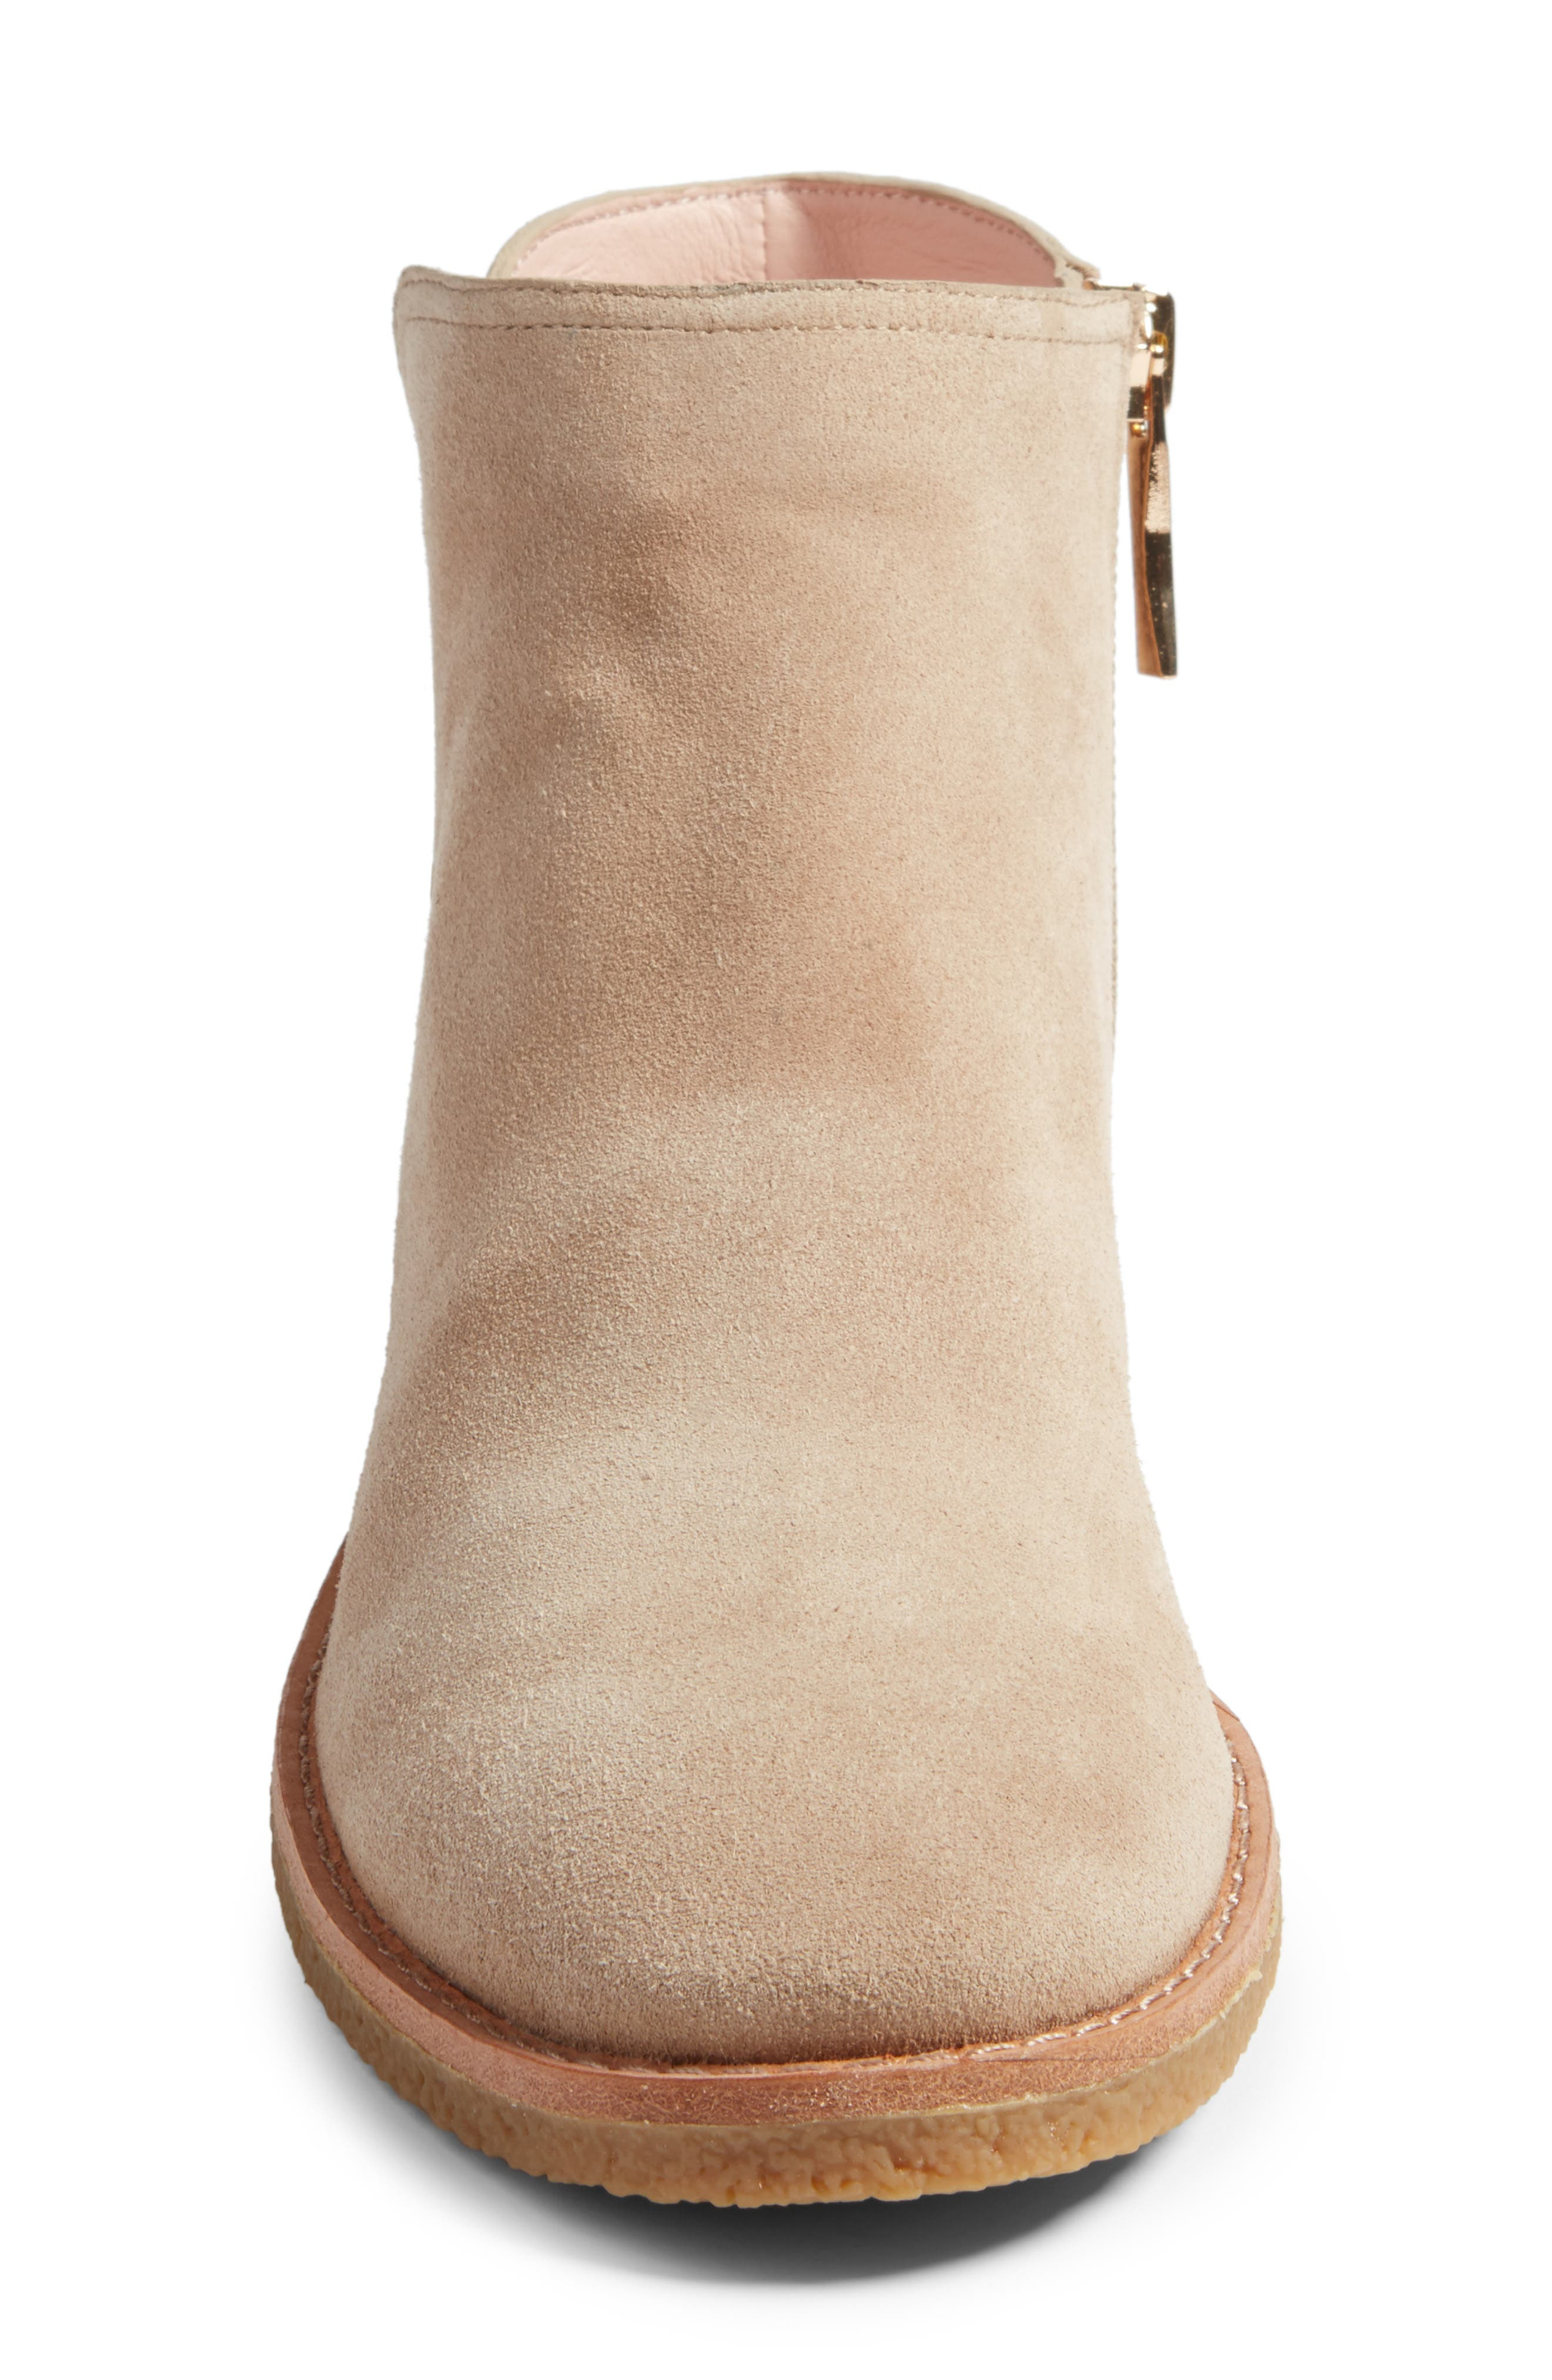 belleville bootie,                             Alternate thumbnail 4, color,                             Desert Cow Suede